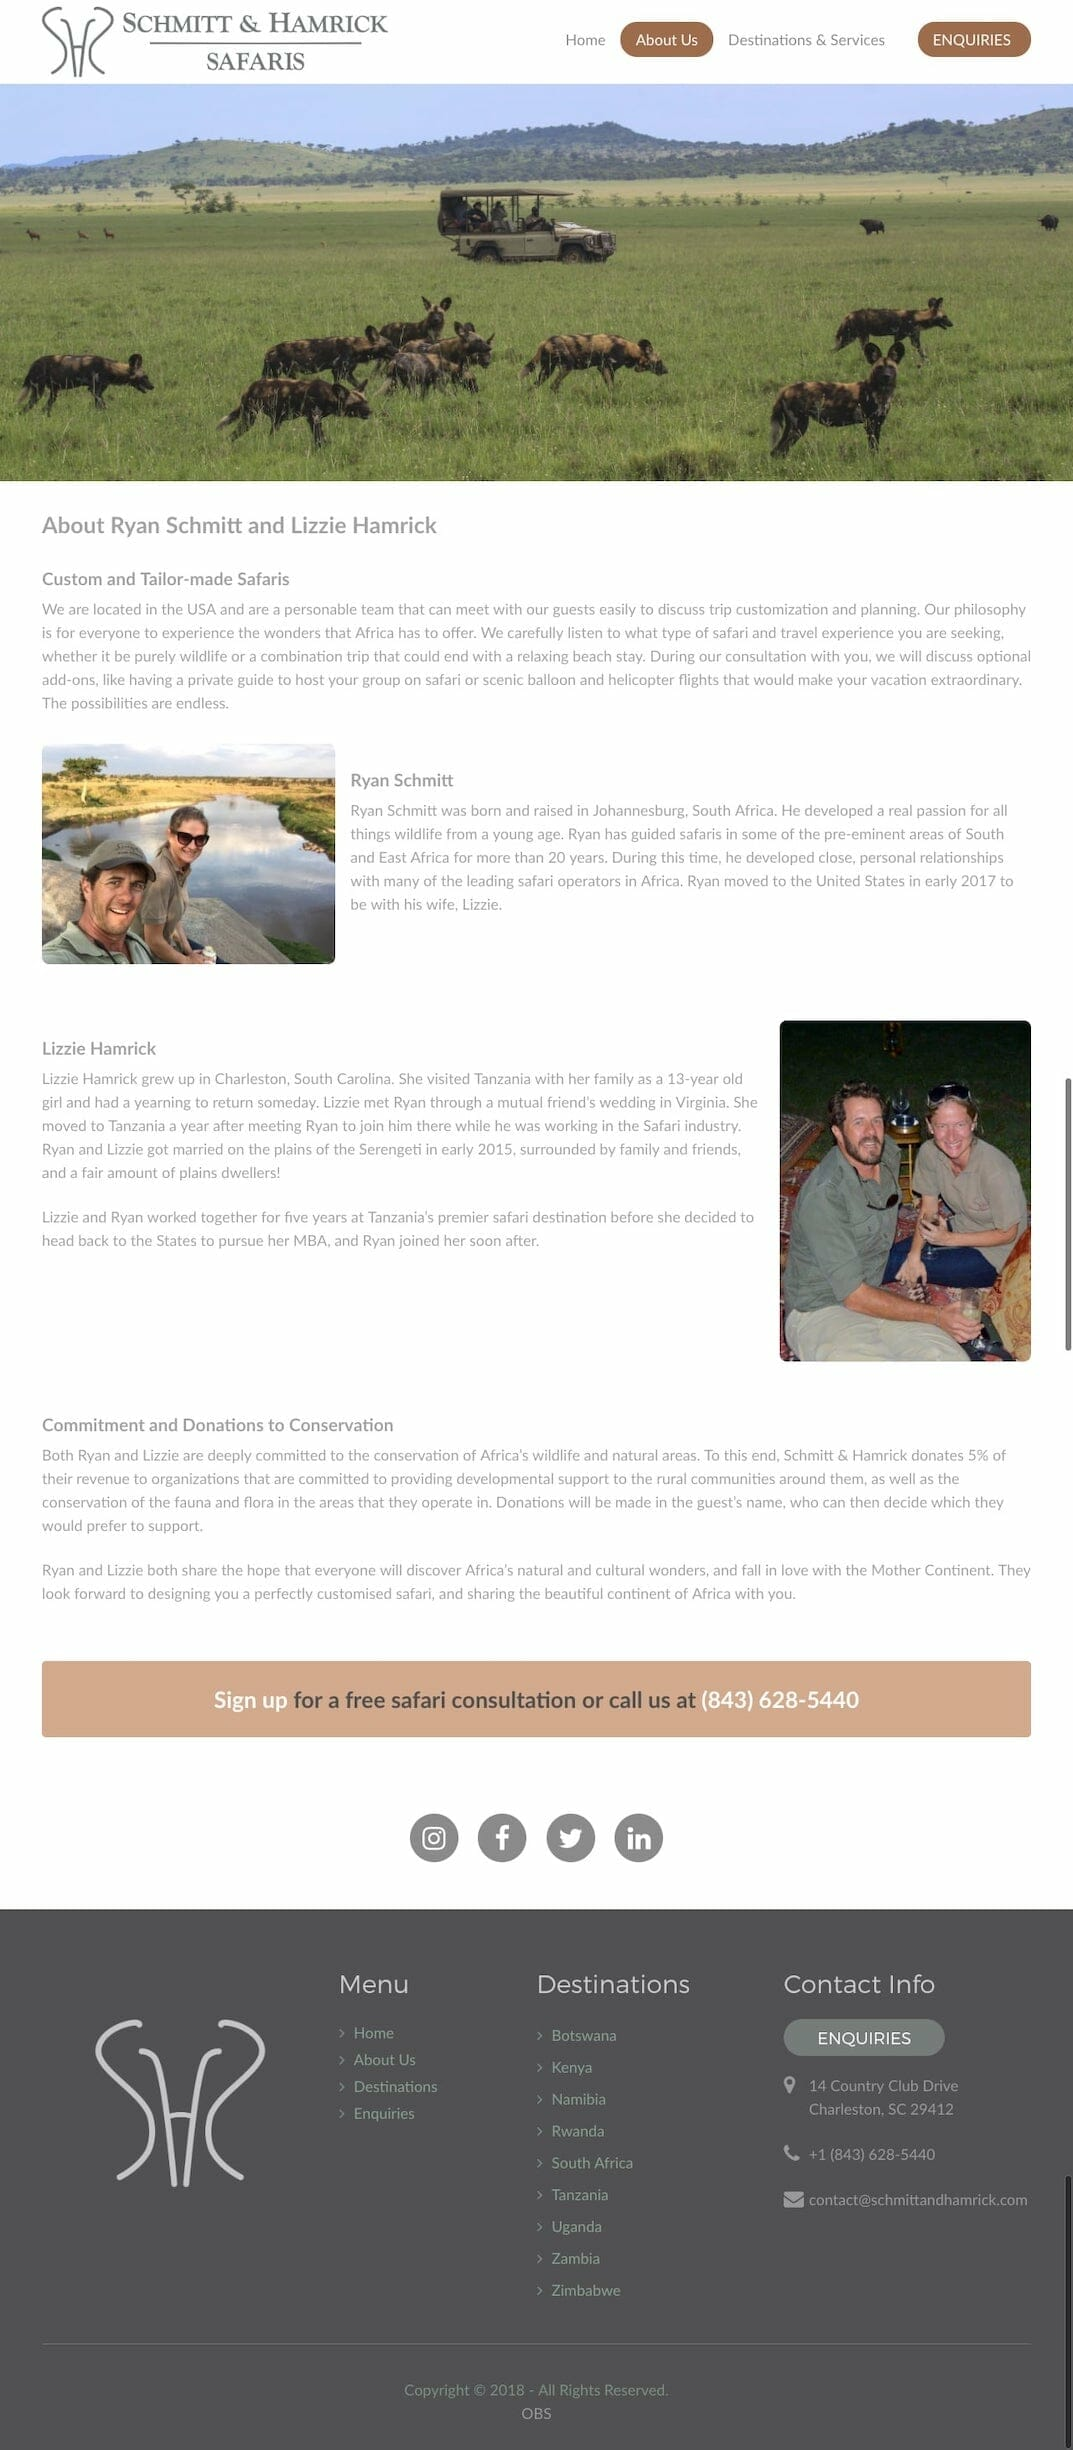 Schmitt & Hamrick Safaris About Us Page